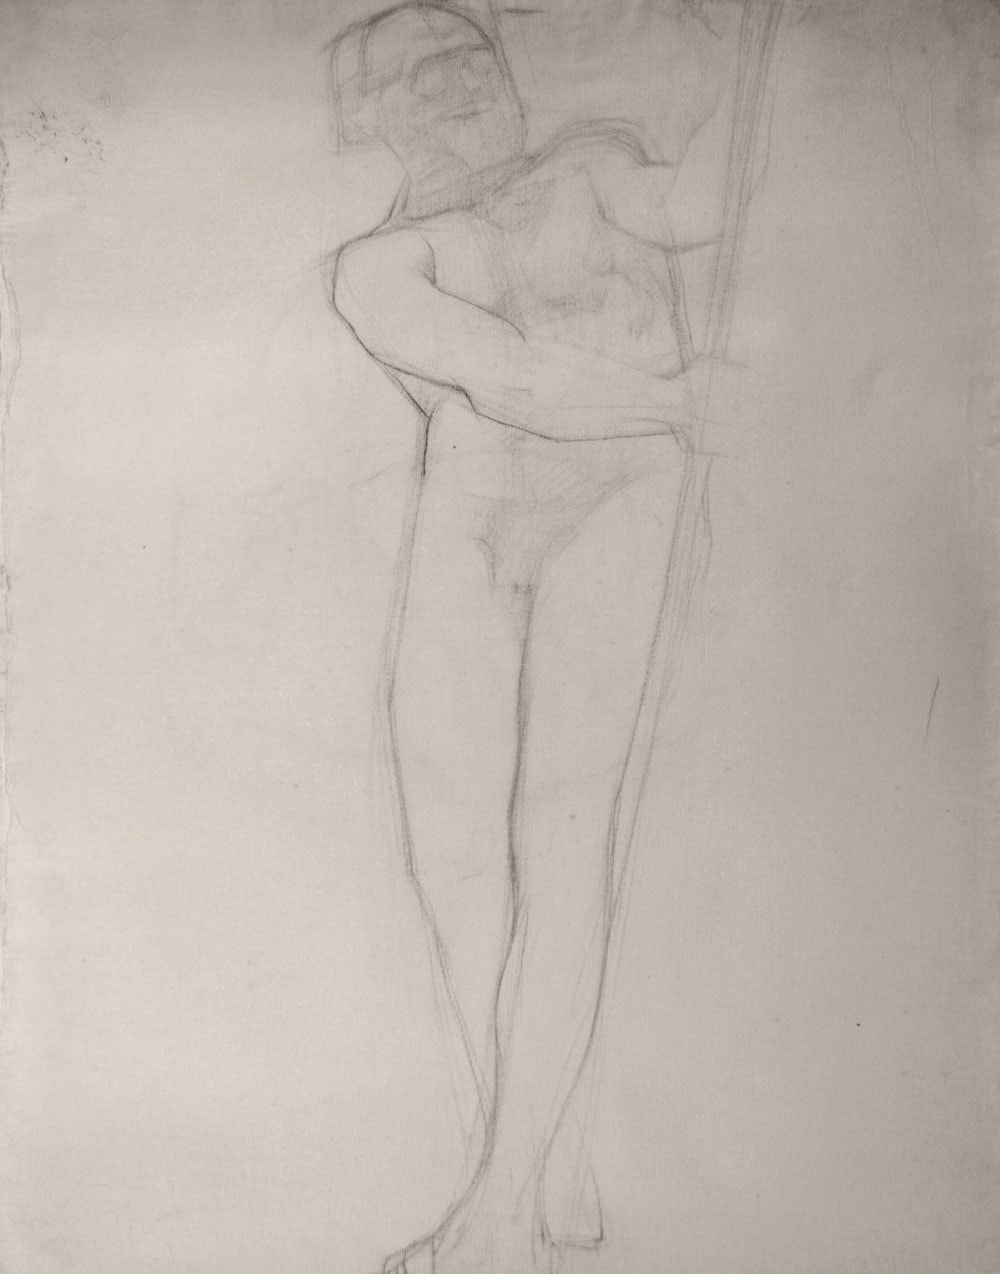 Lucien-Paul Pouzargues drawing male nude with pole